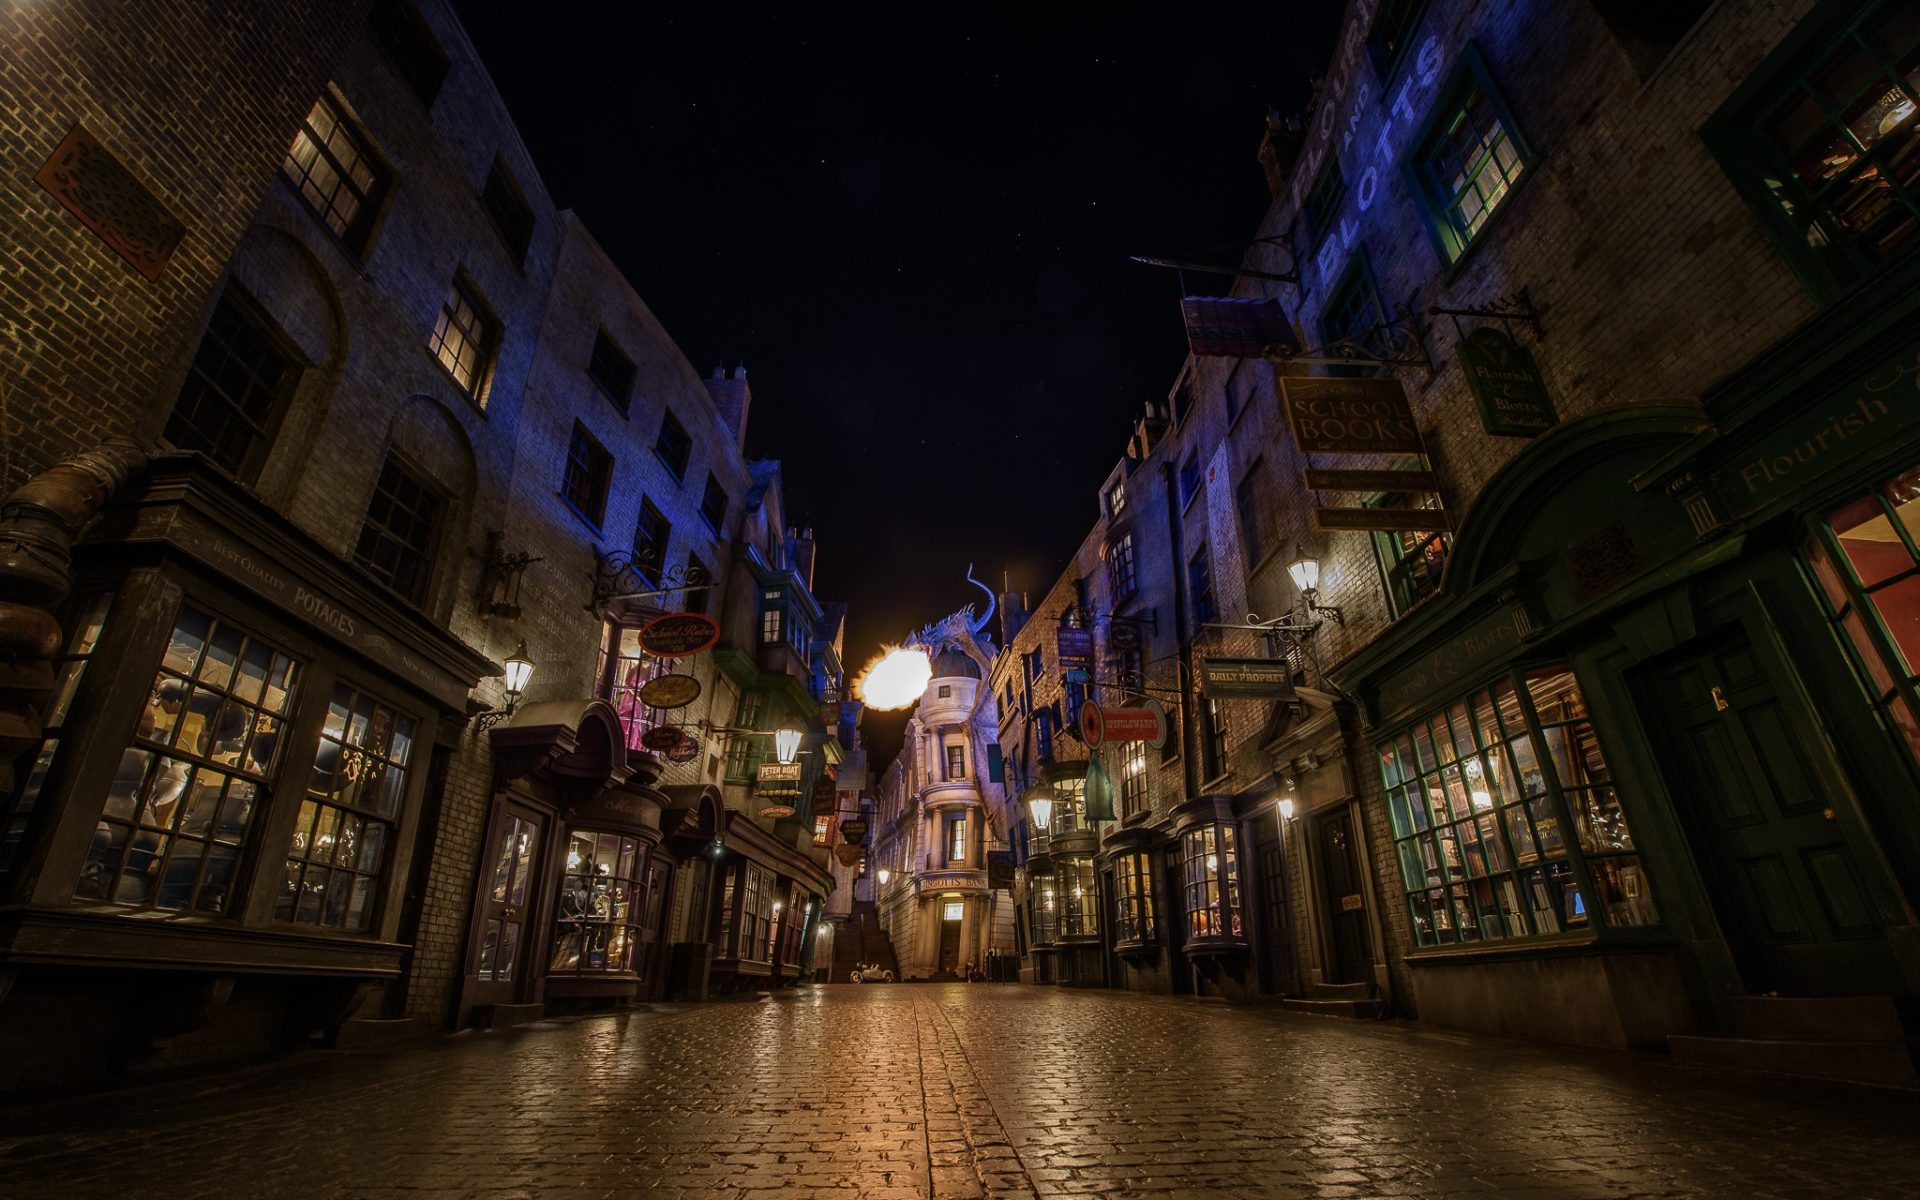 What to do in Orlando: Fire Alley at the Harry Potter World. Photo by Brett Kiger via Flickr CC